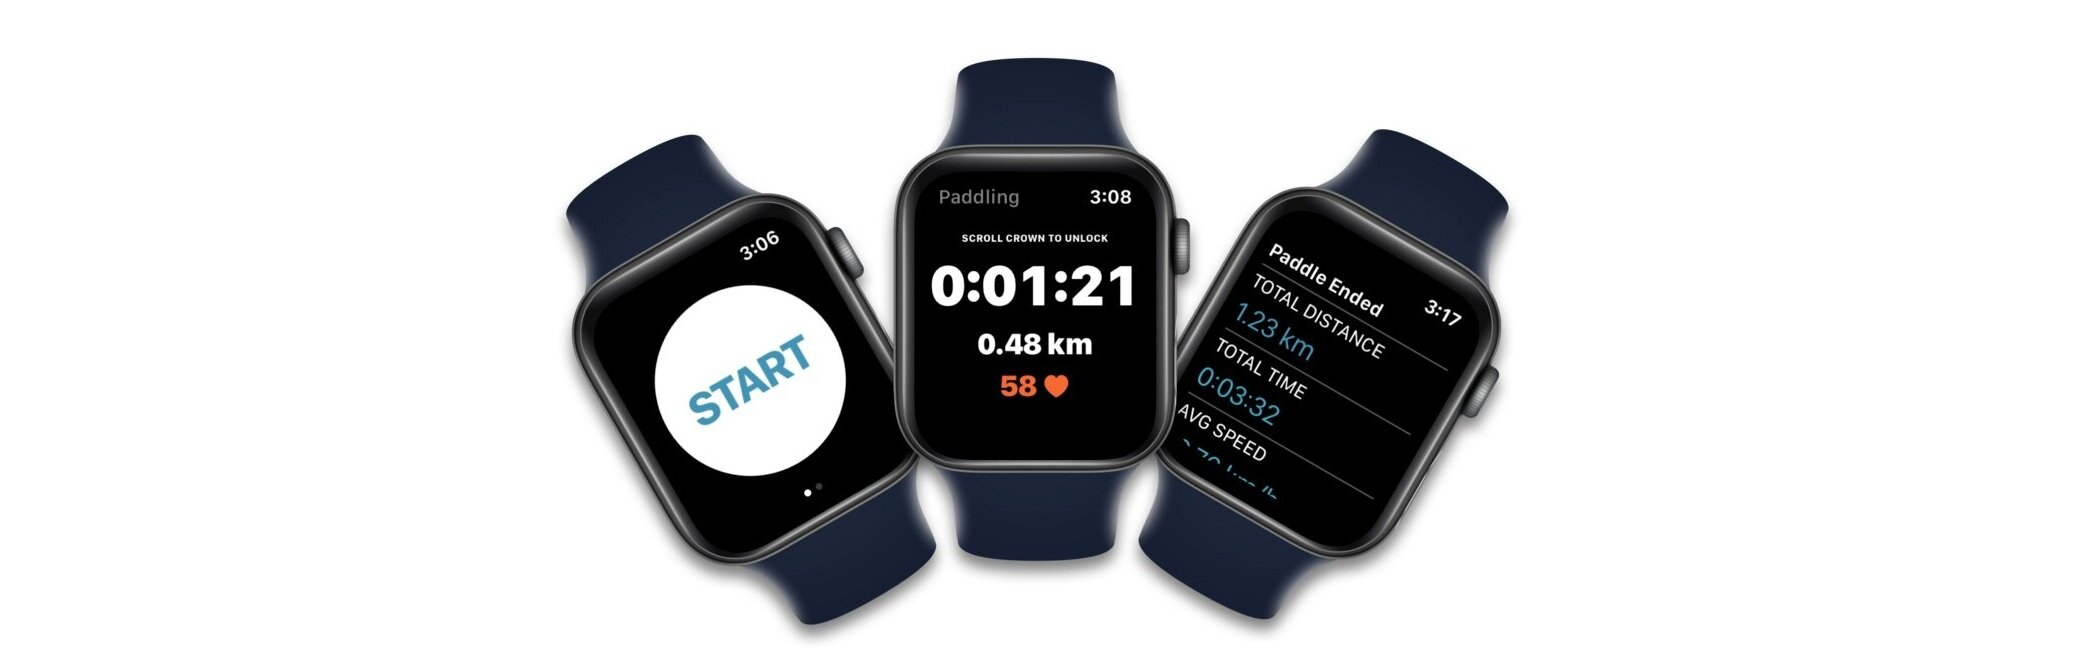 Built for Apple Watch - Independent Apple Watch App.Check your distance and heart rate with just a glance to your wrist.Integration with Apple Health fills your Activity Rings.